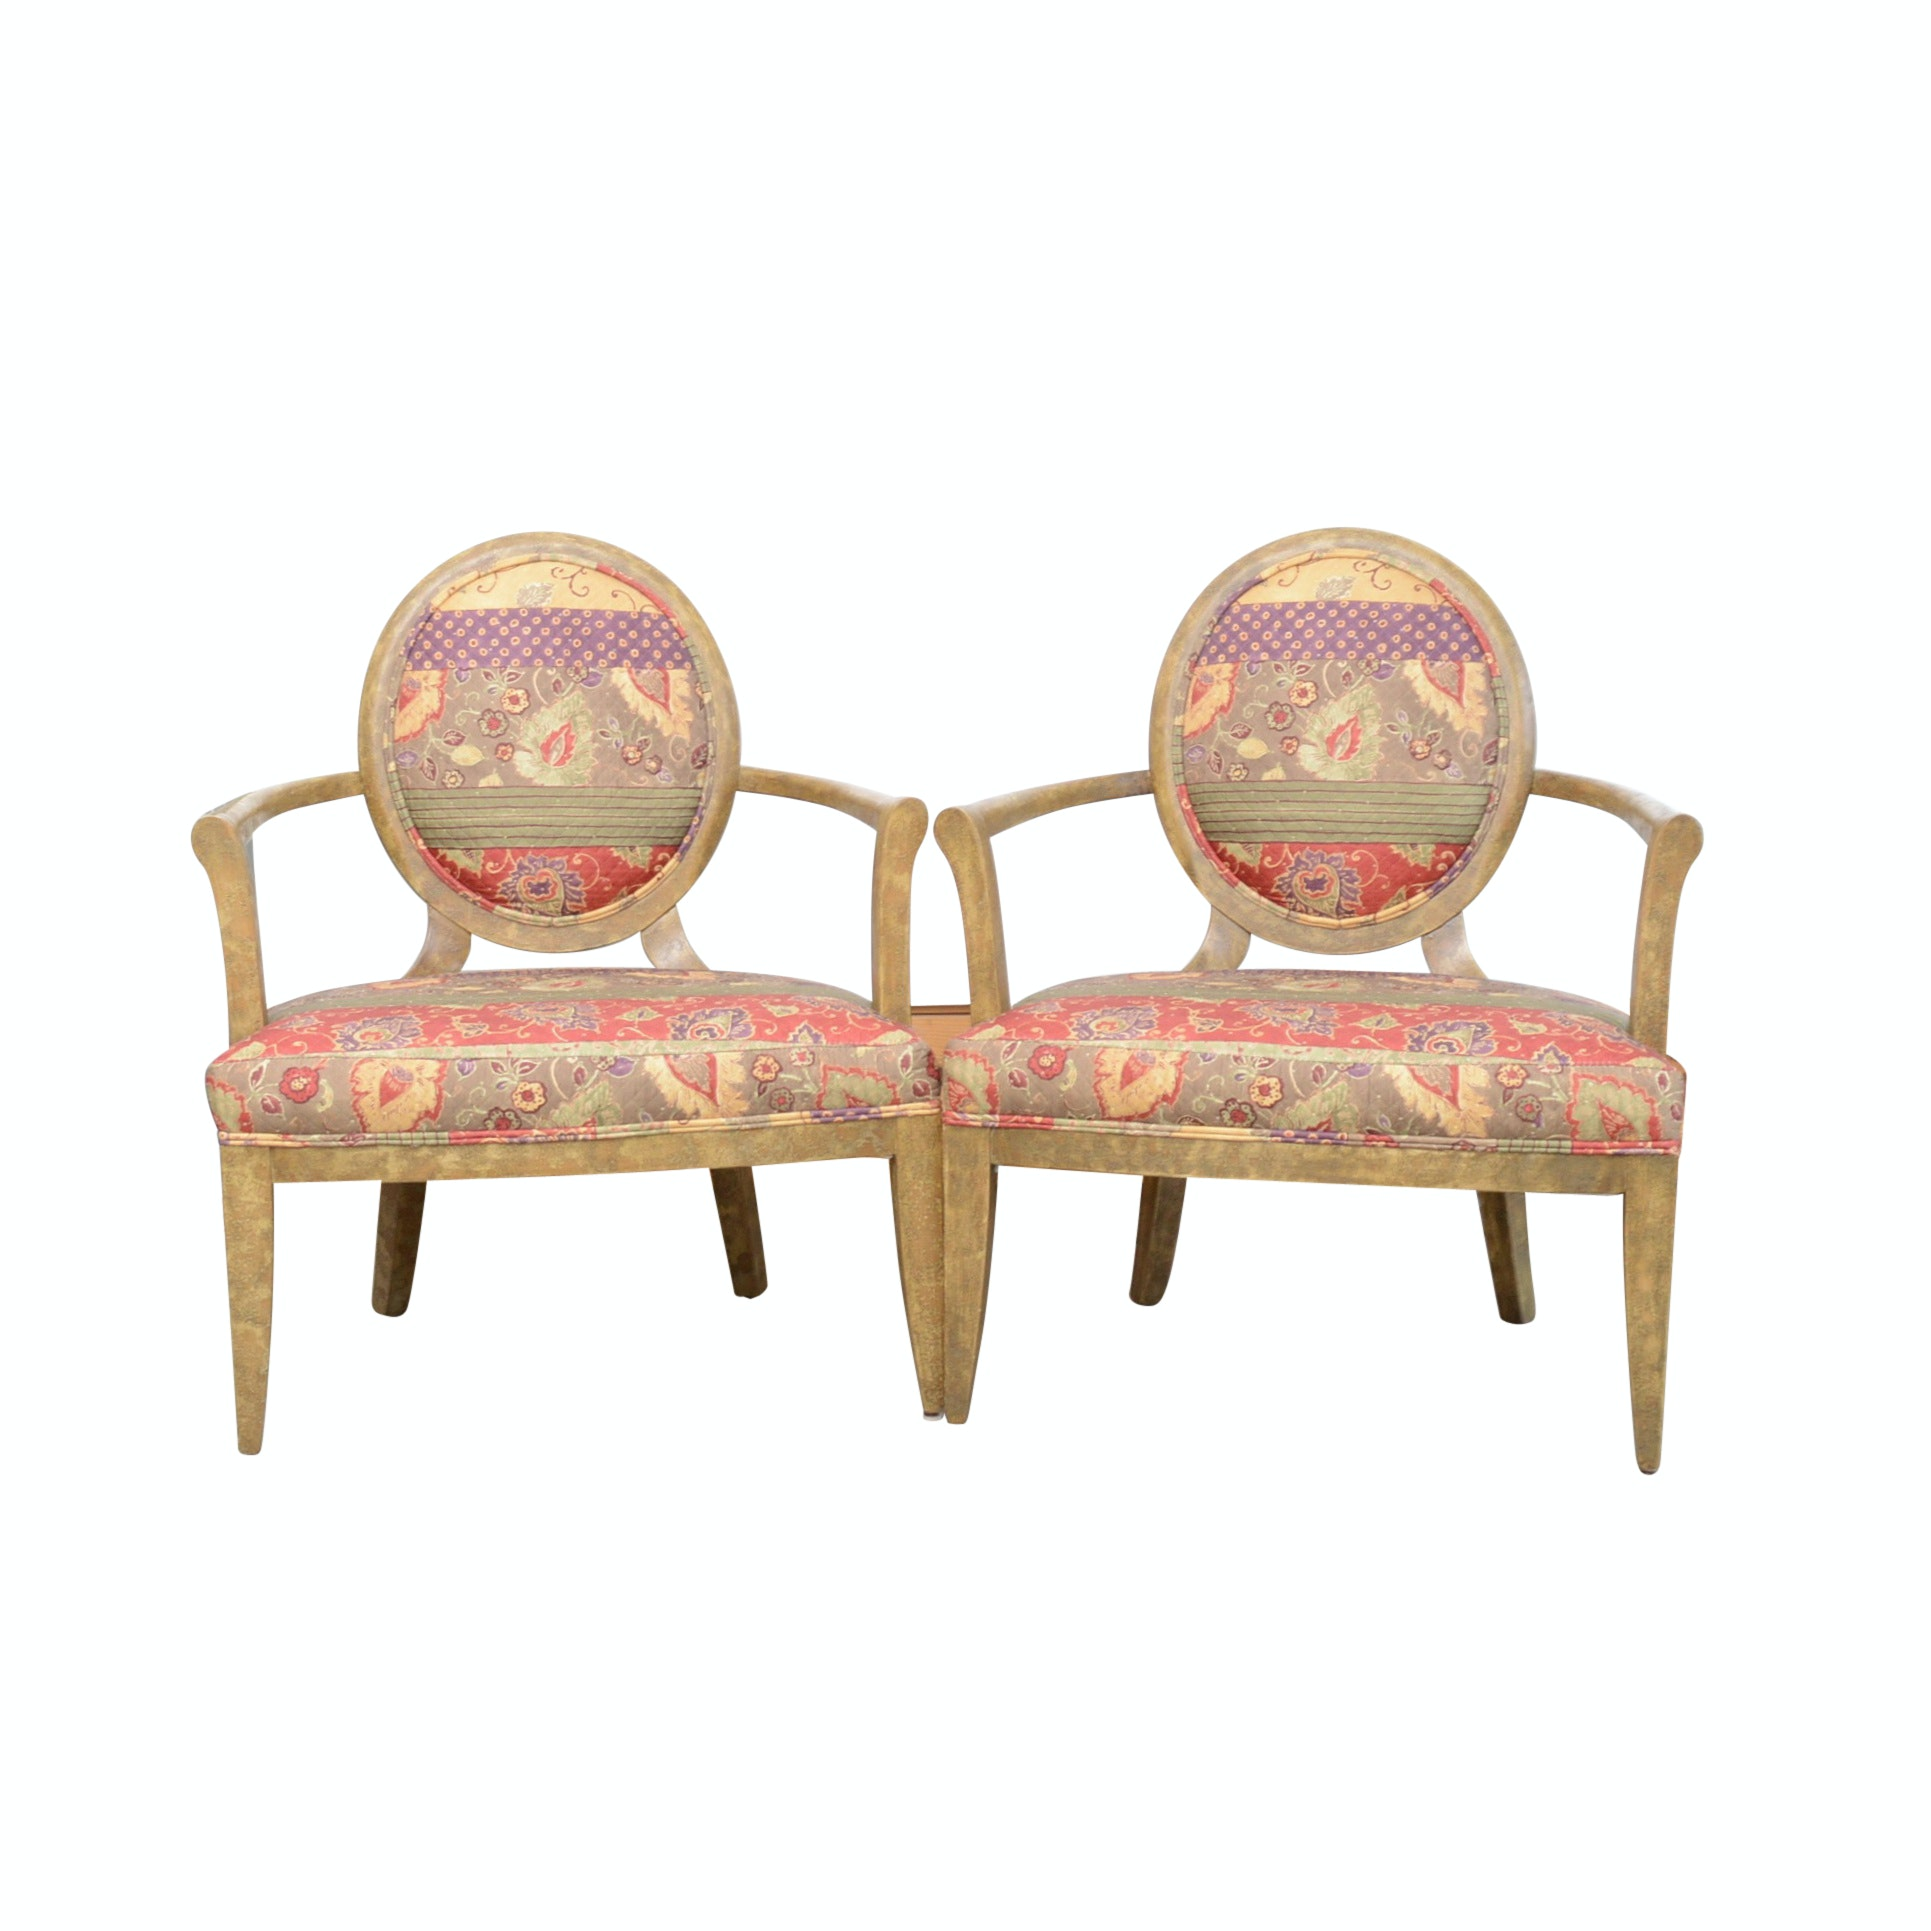 Pair of Custom Upholstered Balloon Back Chairs